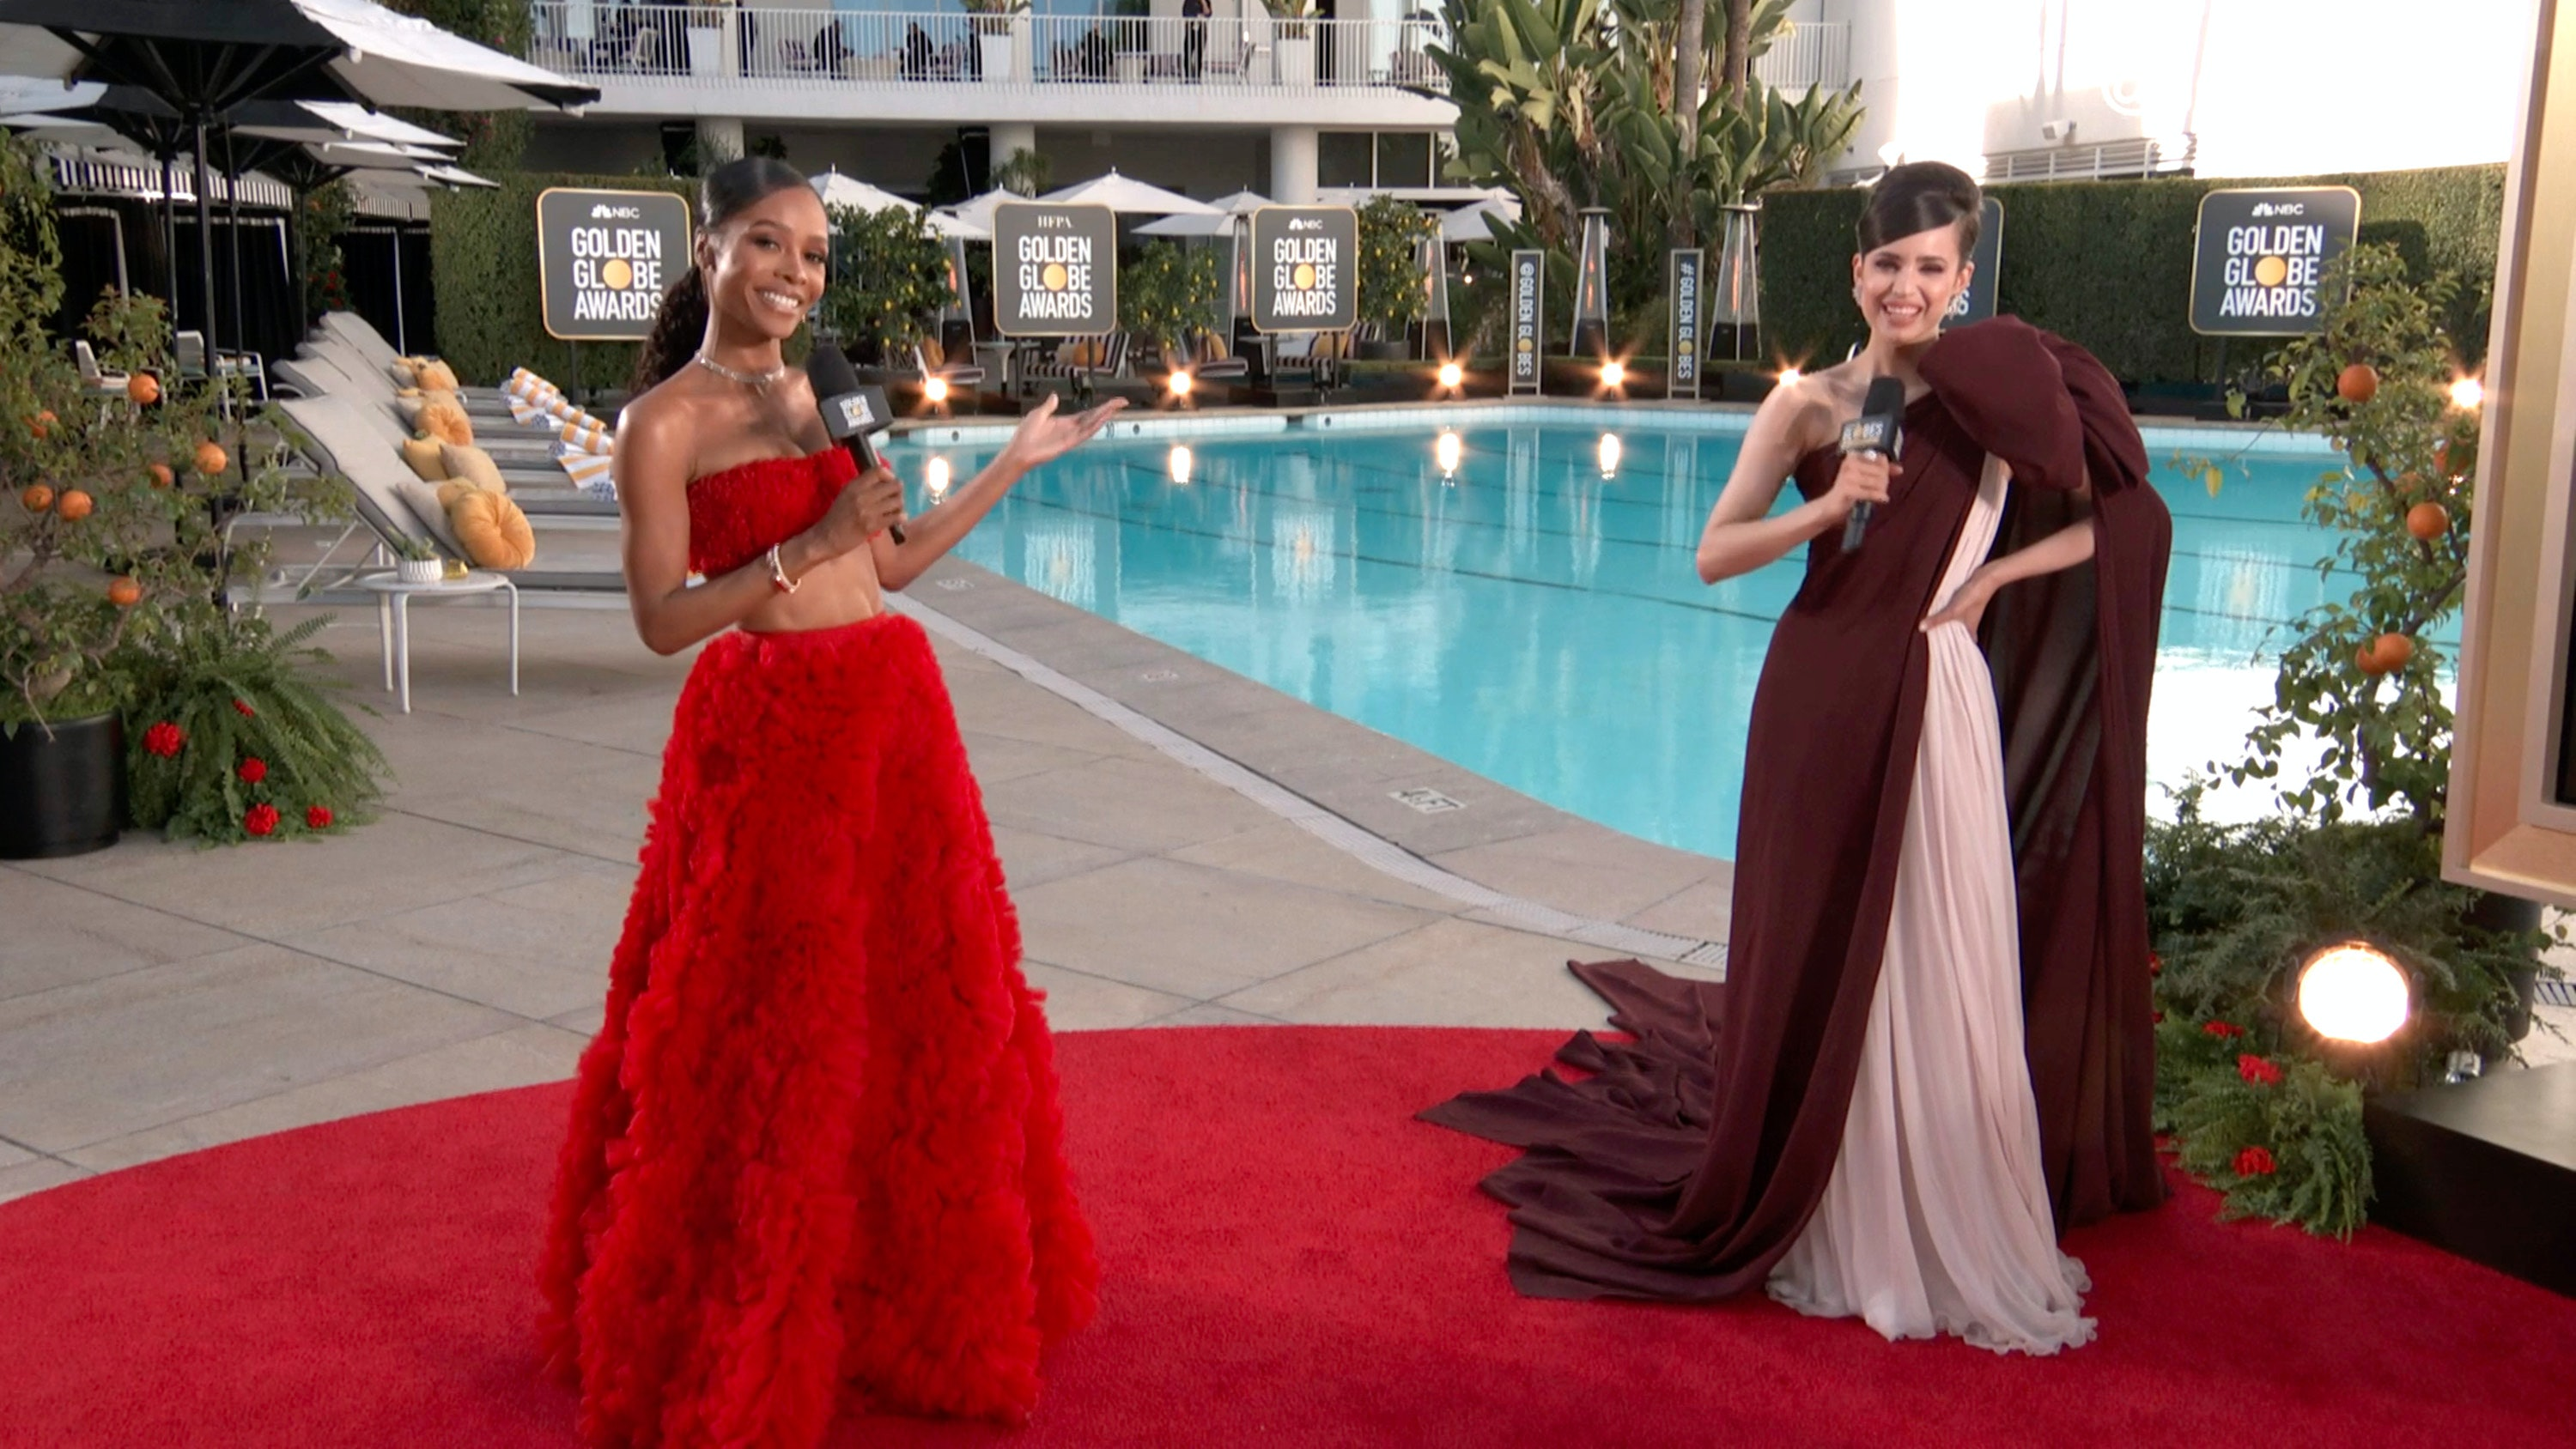 Golden Globes 2021 Red Carpet Looks You'll Want To Copy Stat